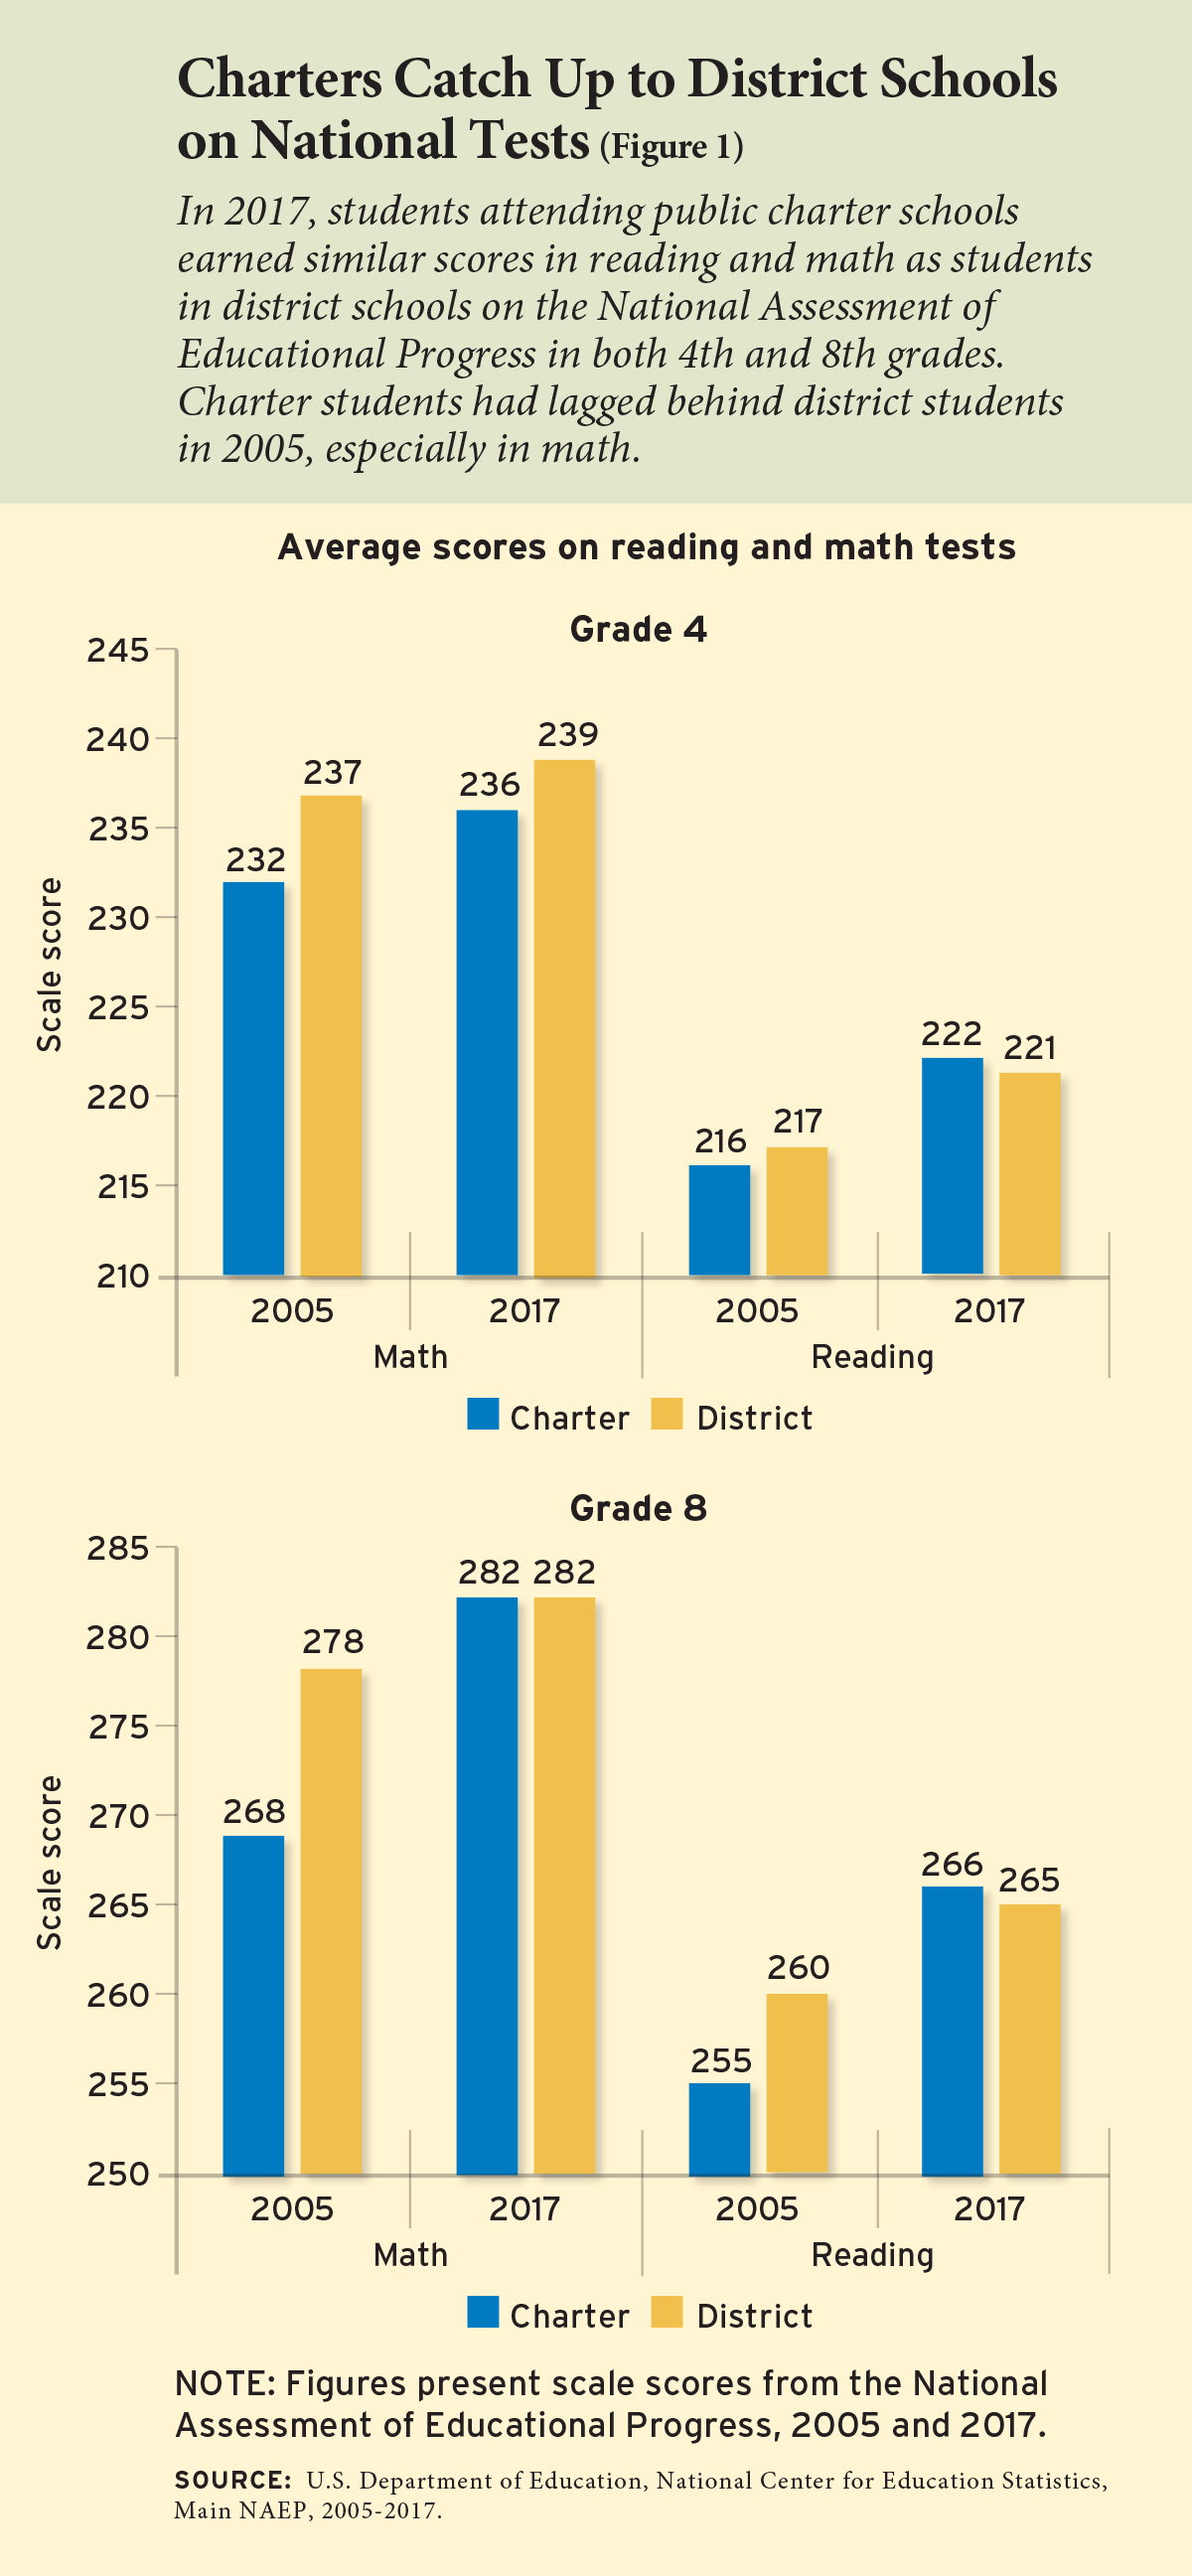 Figure 1 - Charters Catch Up to District Schools on National Tests